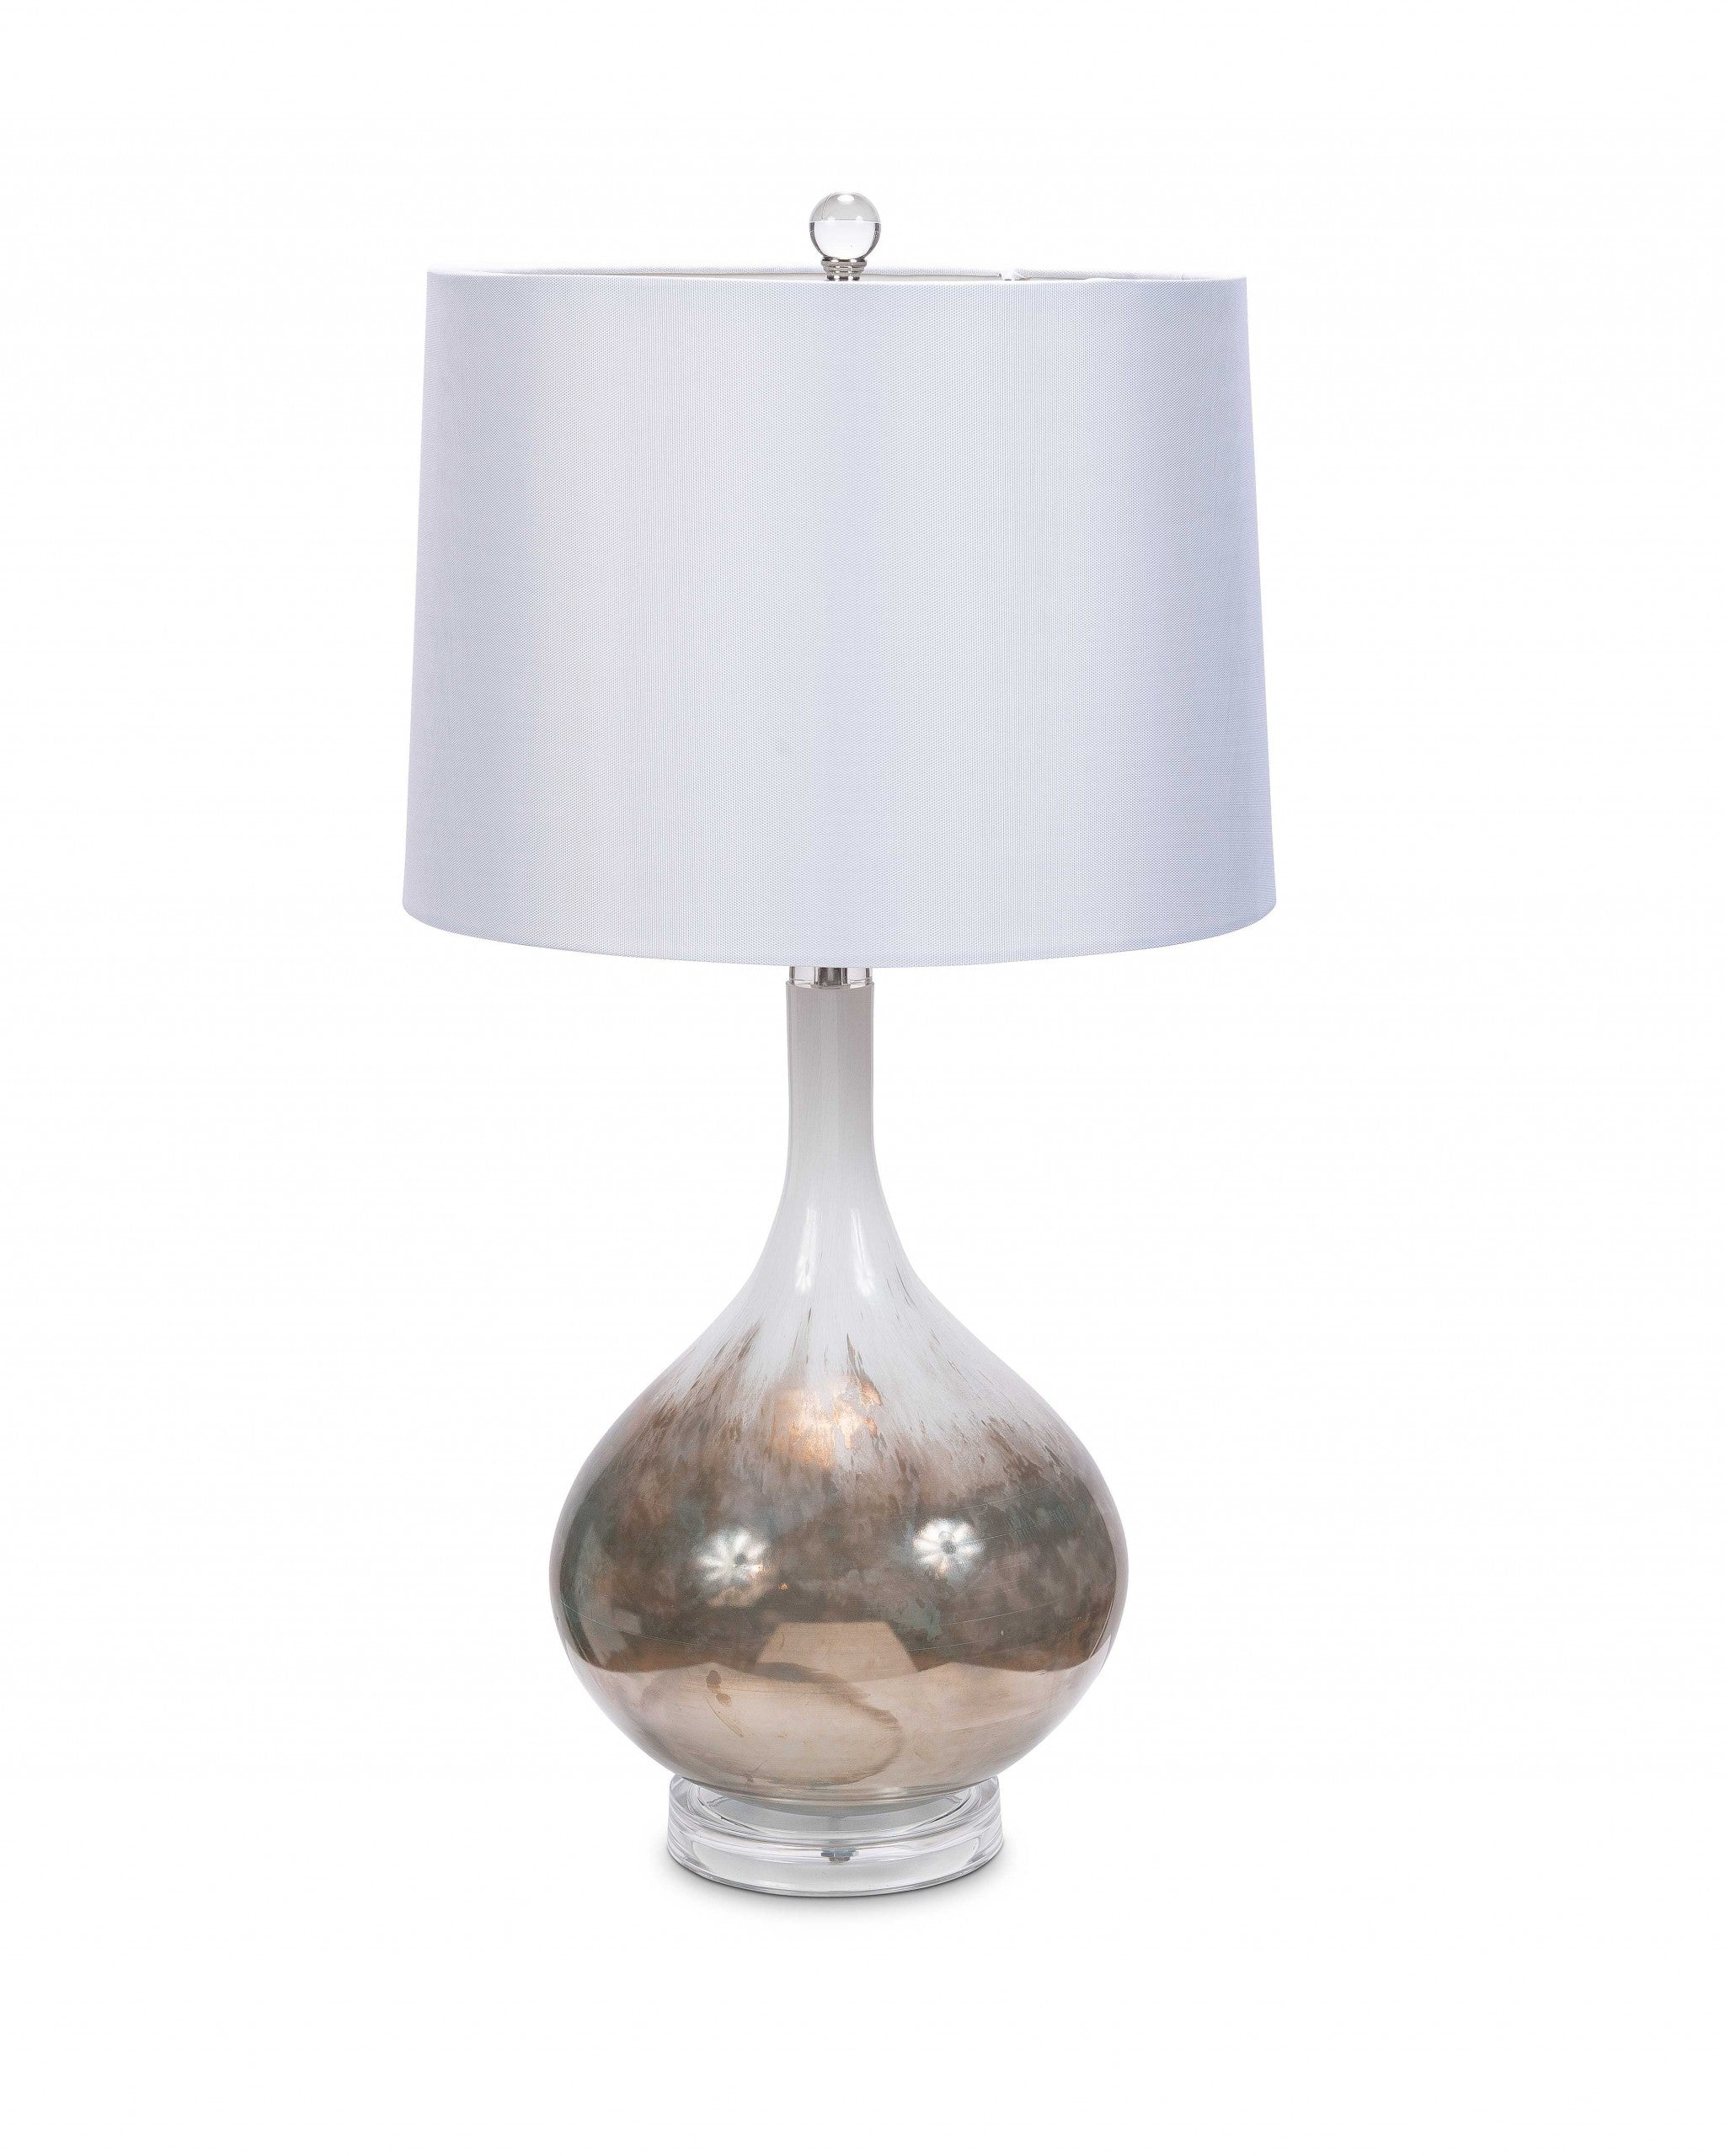 S/2 Art Glass Table Lamp